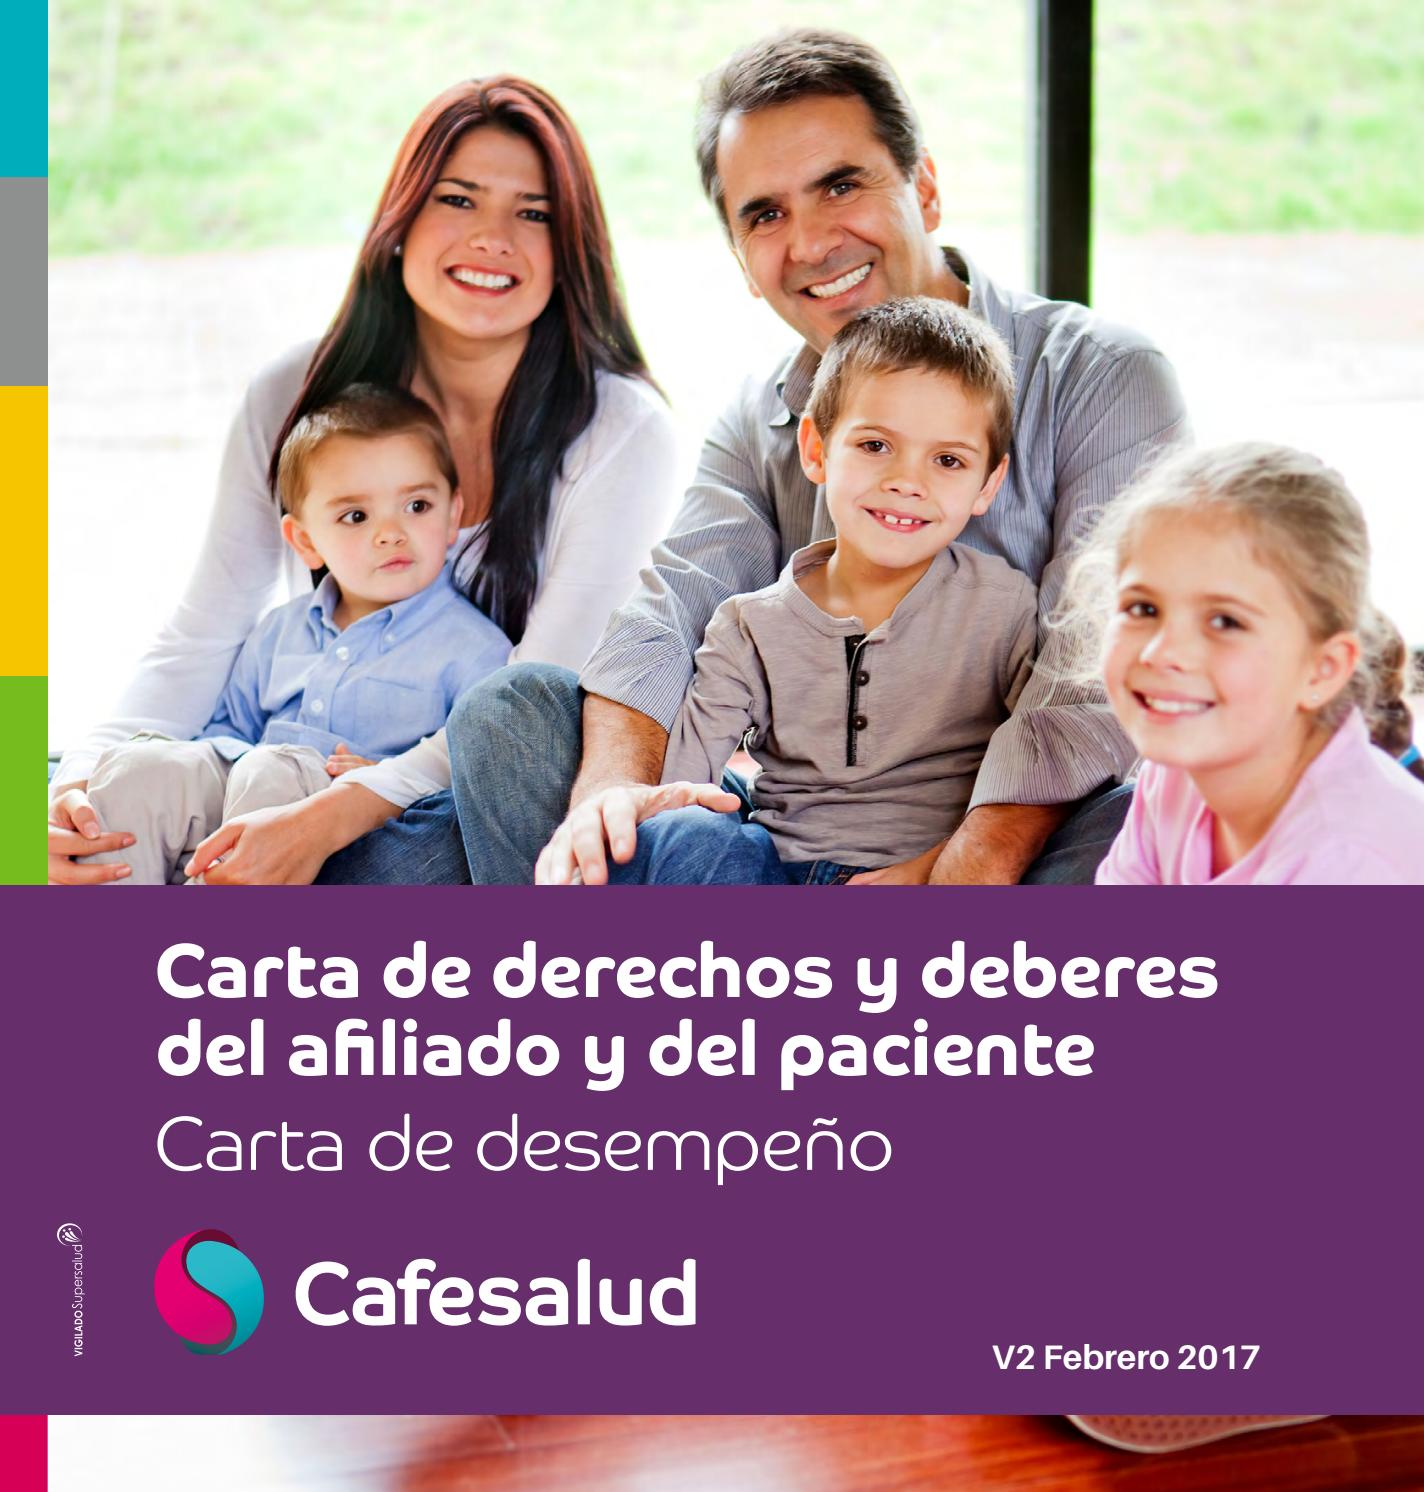 Cafesalud Spain citas ultims